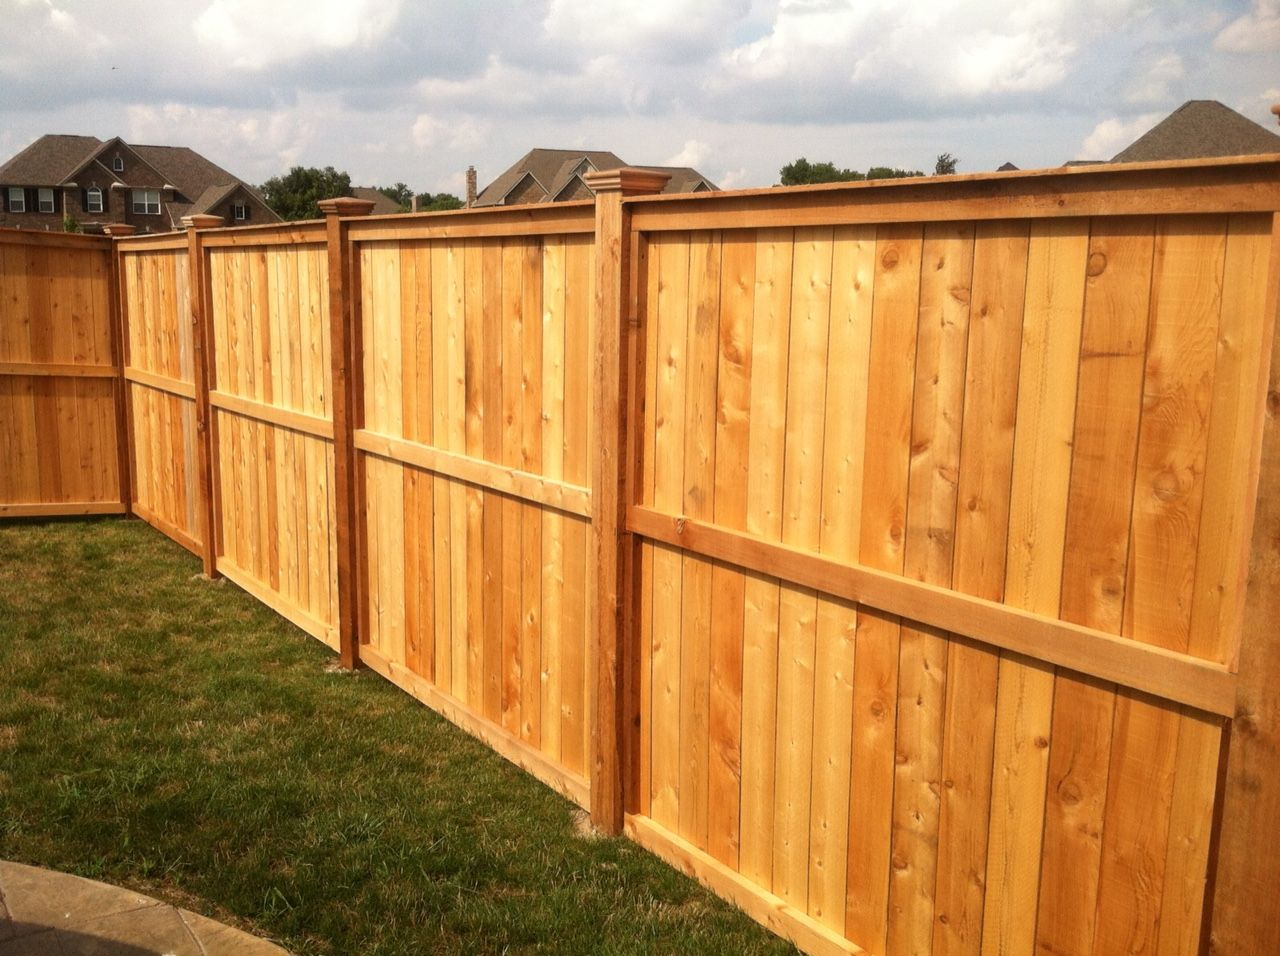 Decorative wooden privacy fence fence pinterest for Wood privacy fence ideas